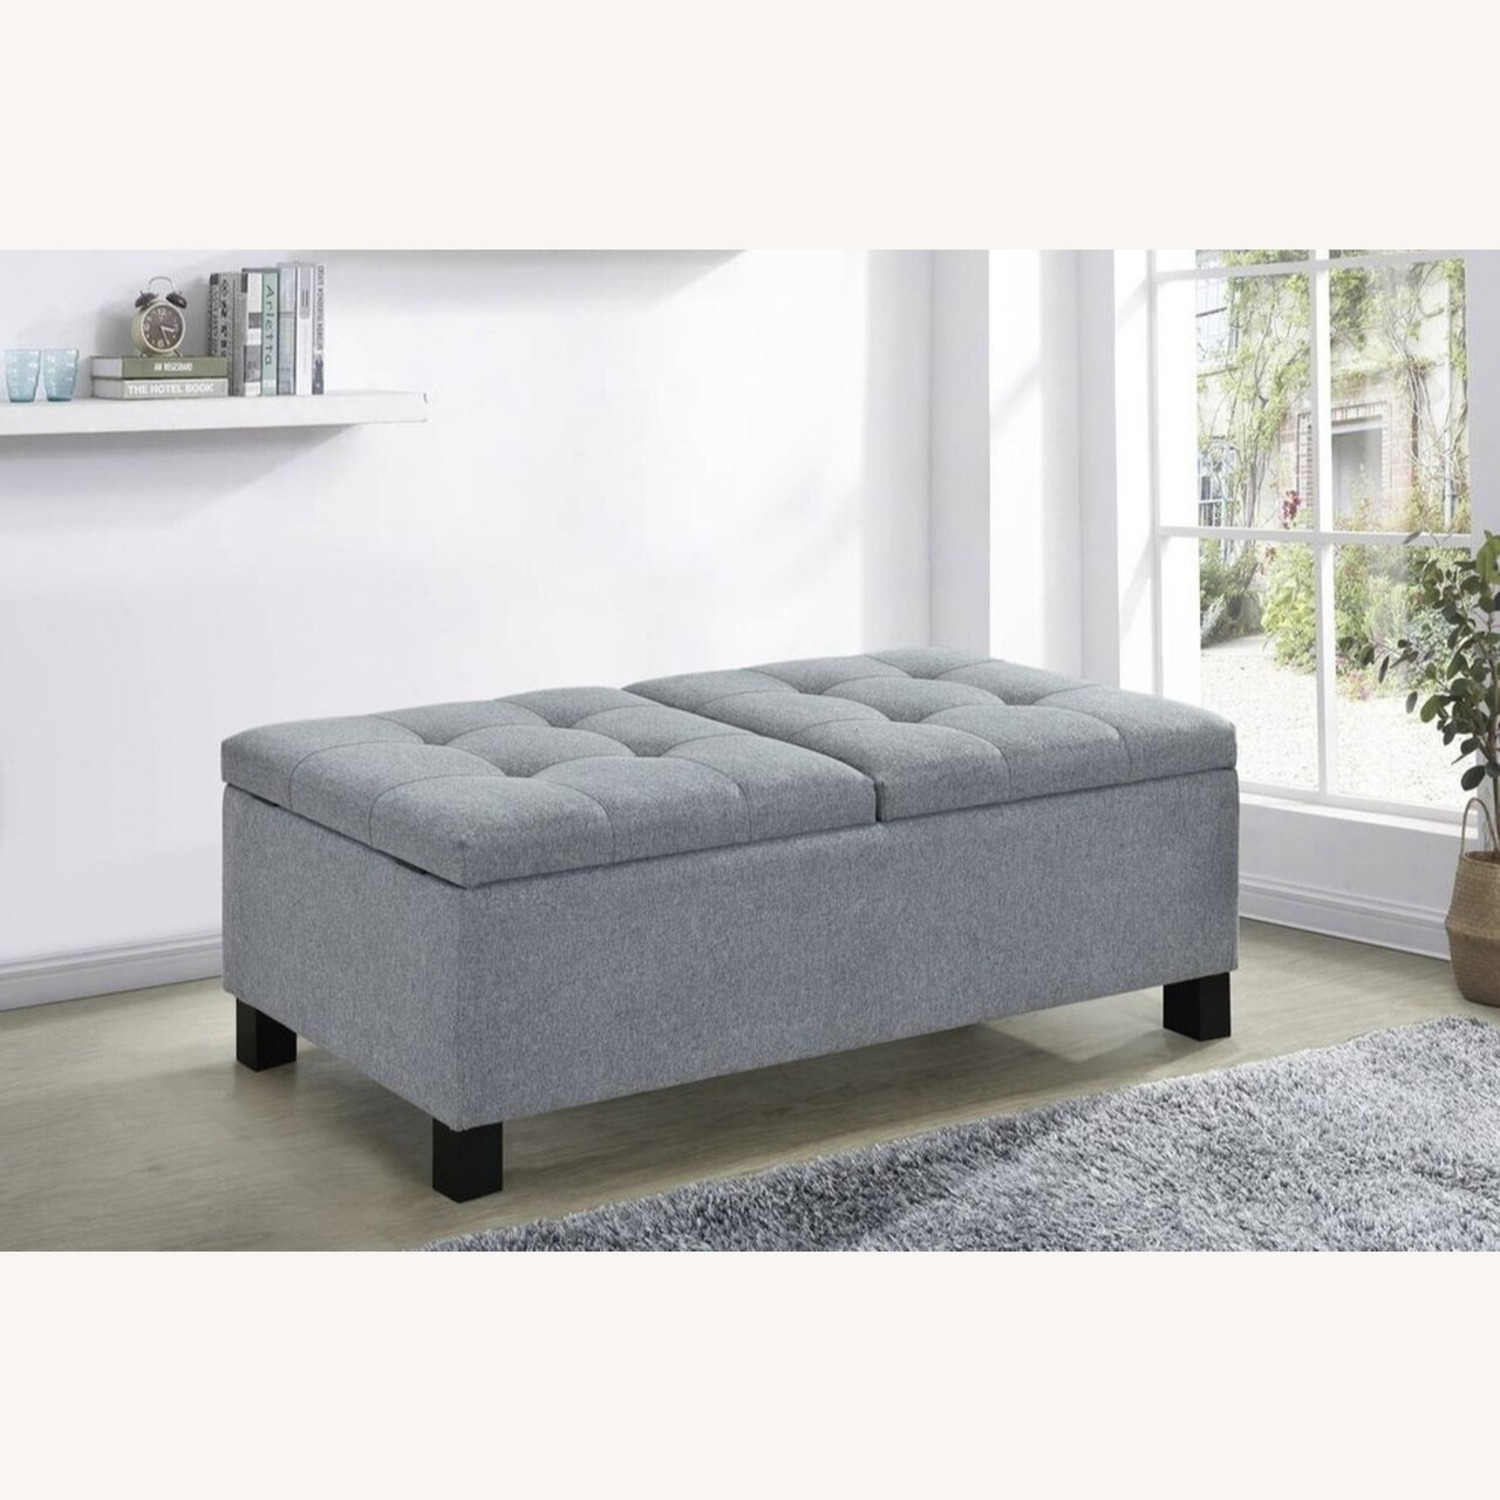 Modern Storage Bench In Grey Fabric - image-2